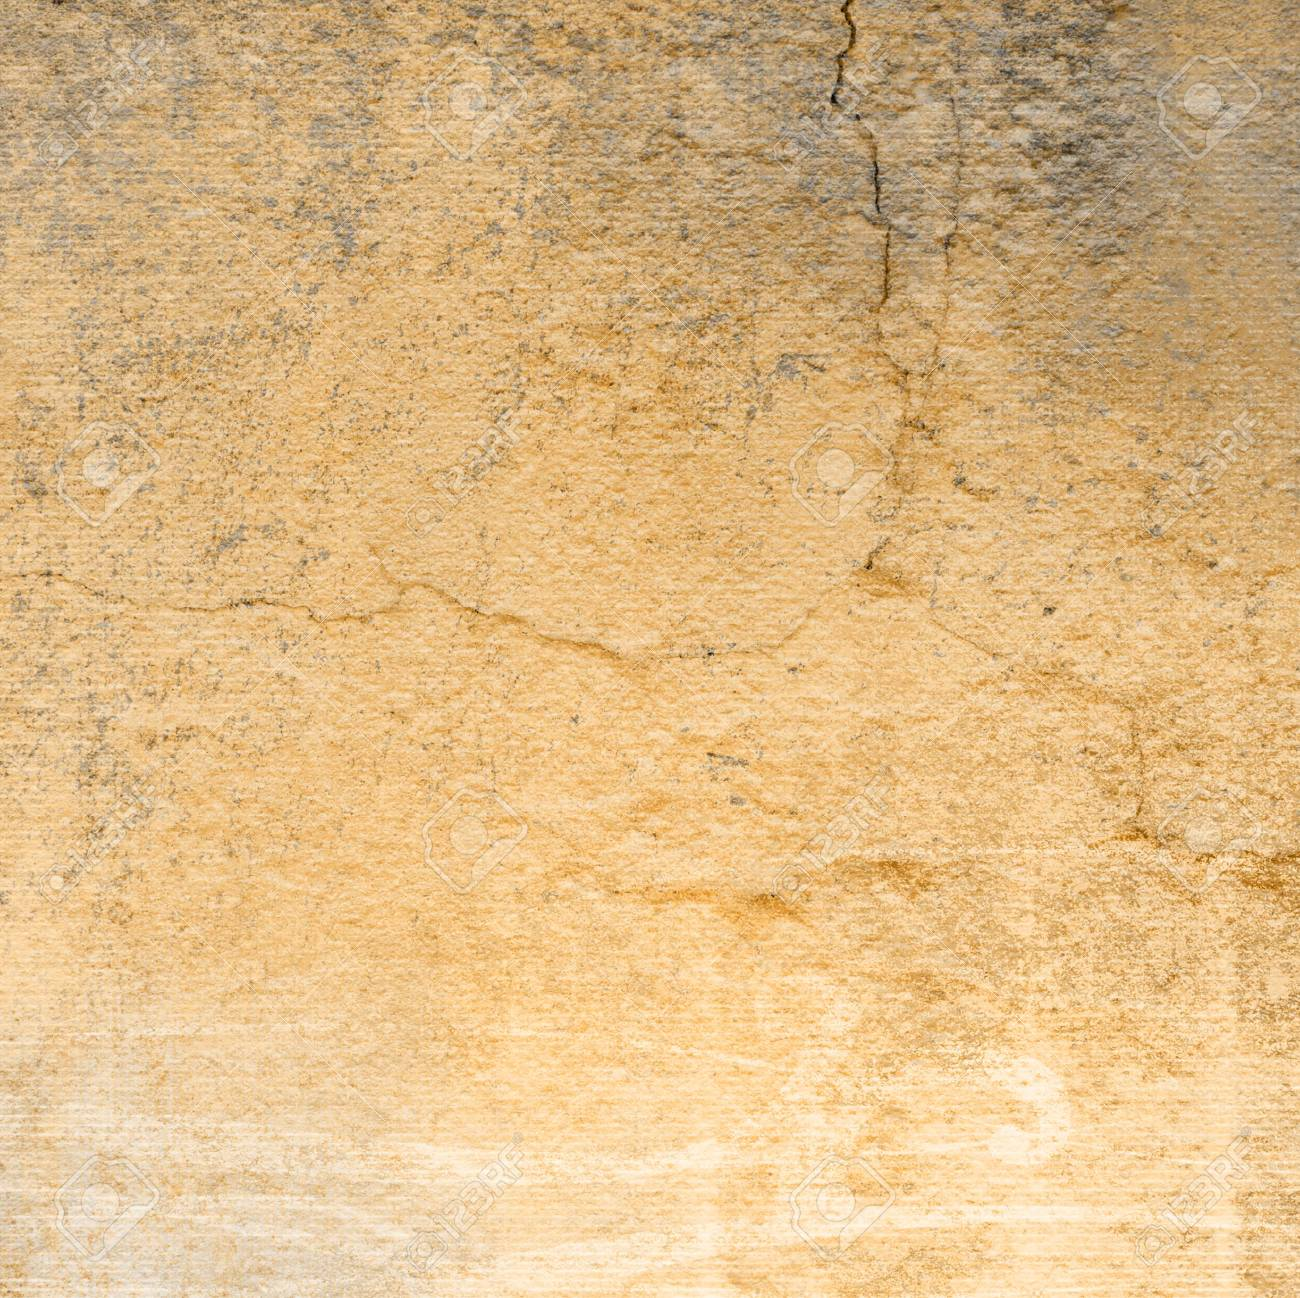 grunge backgrounds - perfect background with space for text or image Stock Photo - 2051988